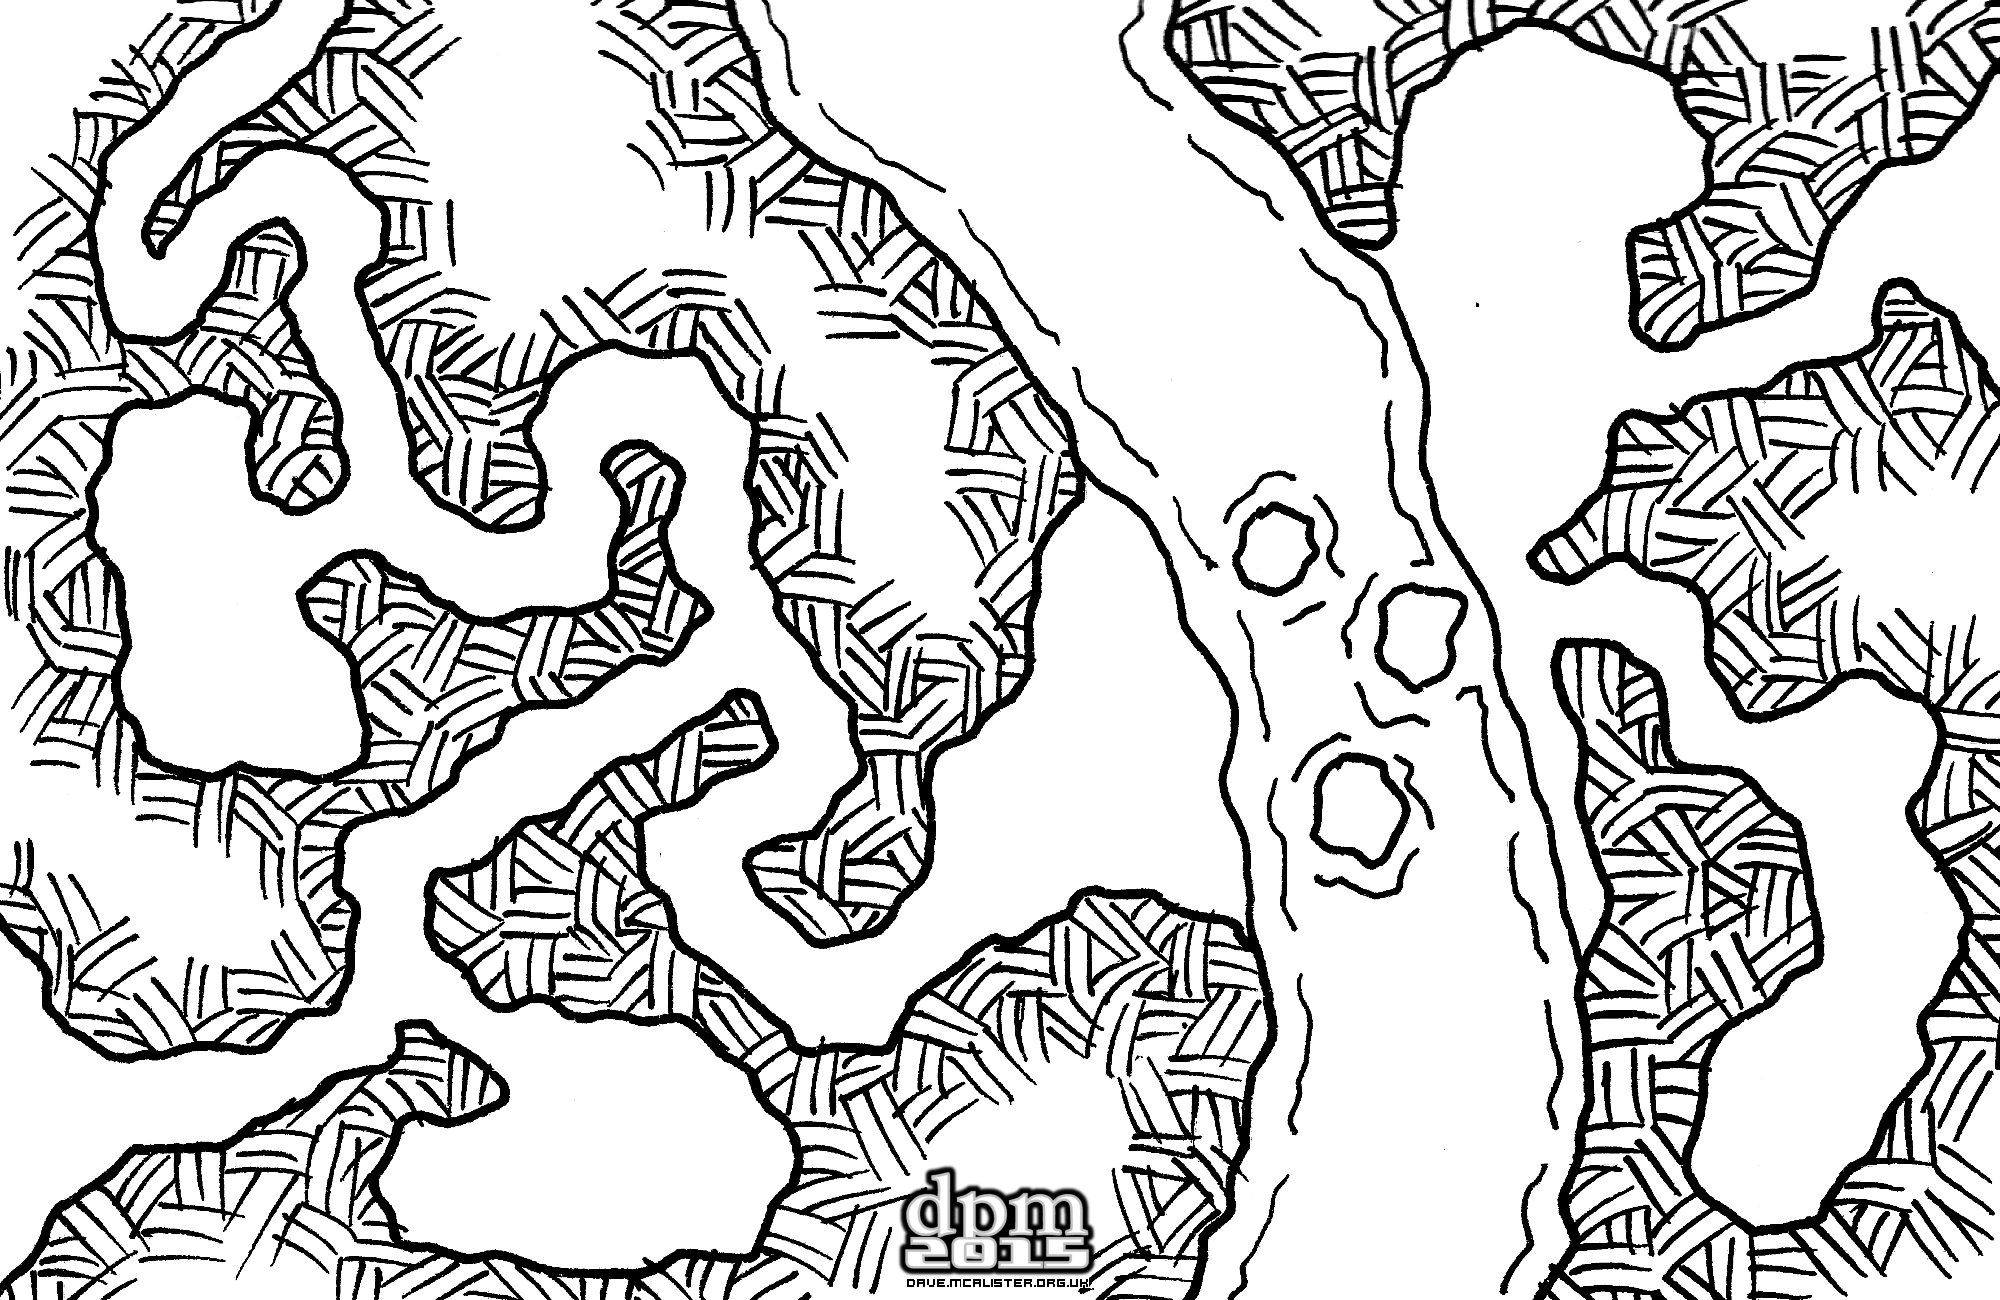 [Friday Map] Yet Another Cavern with Underground River!